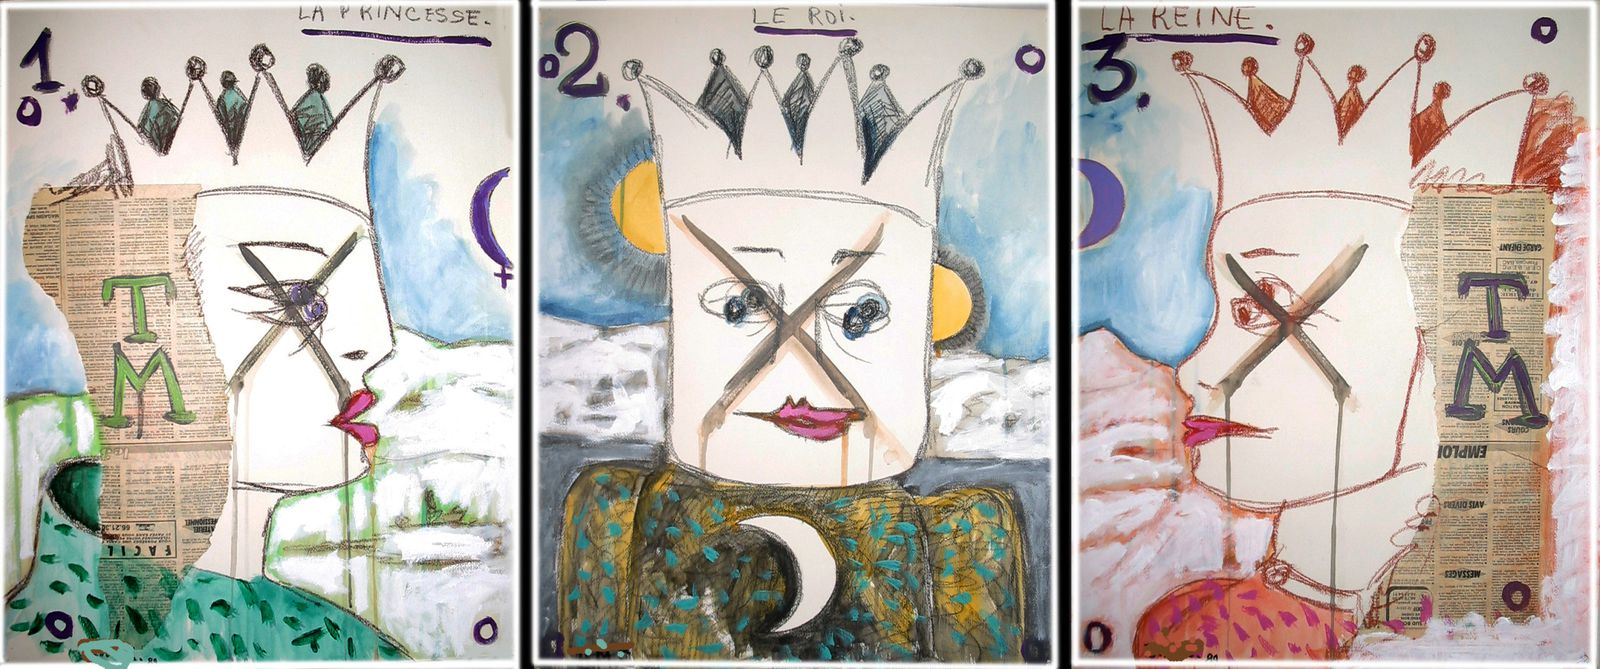 16 - LA PRINCESSE - LE ROI - LA REINE -Technique mixte - 3 x 65 x 50 cm.